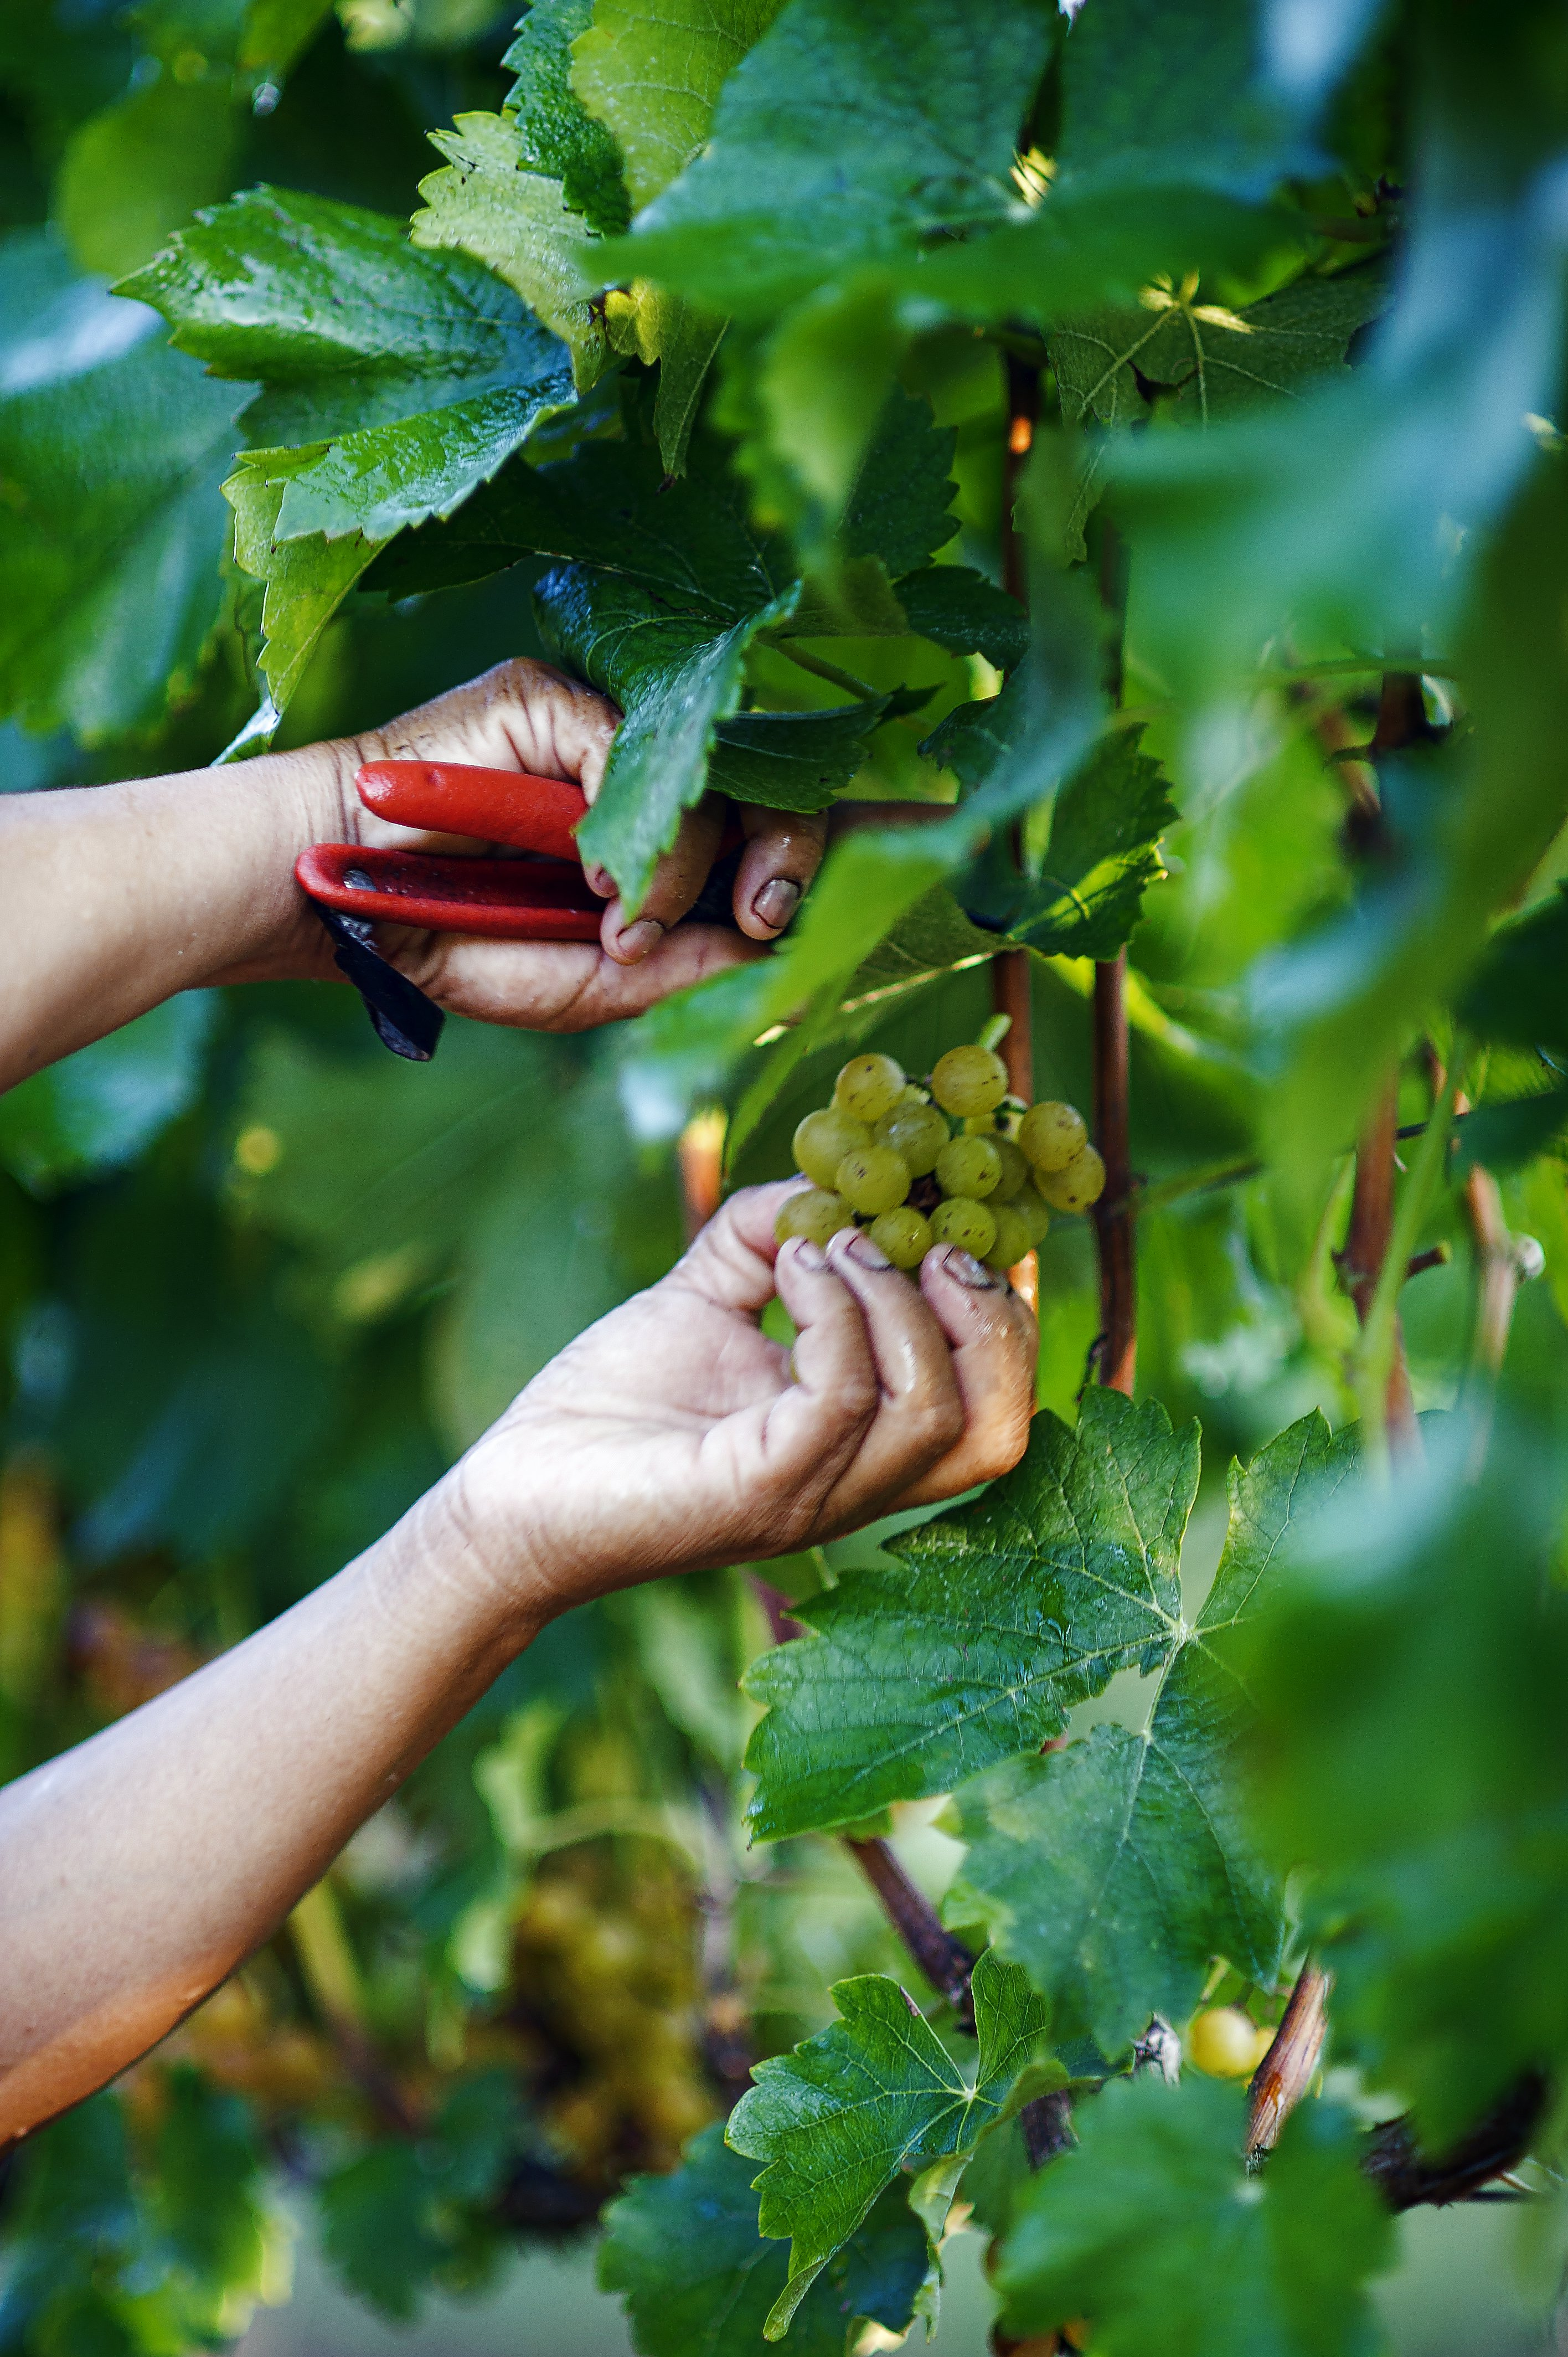 White grapes are picked